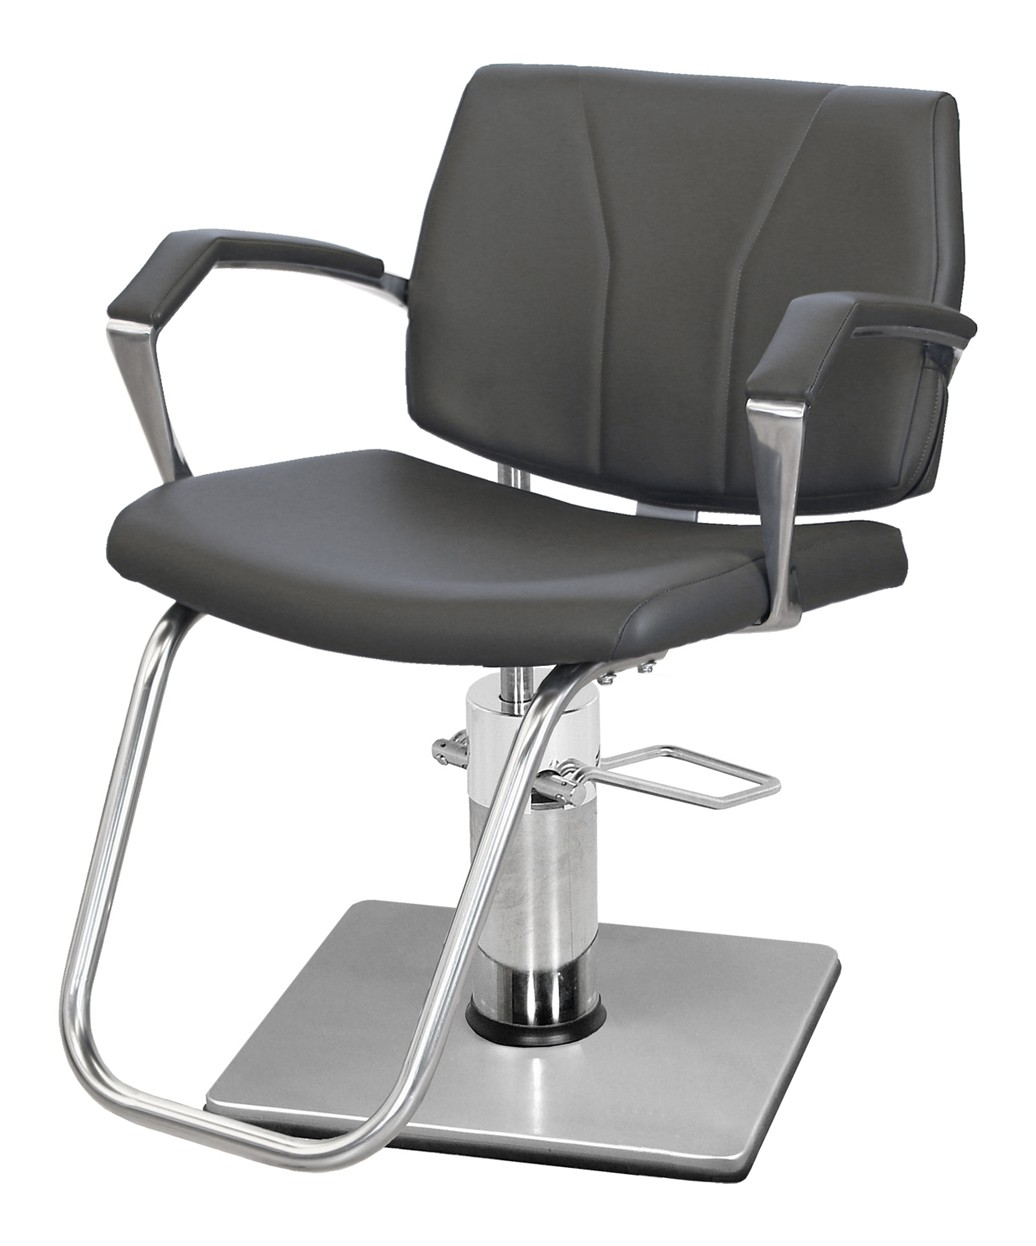 5200X Phenix Styling Chair with Square Base